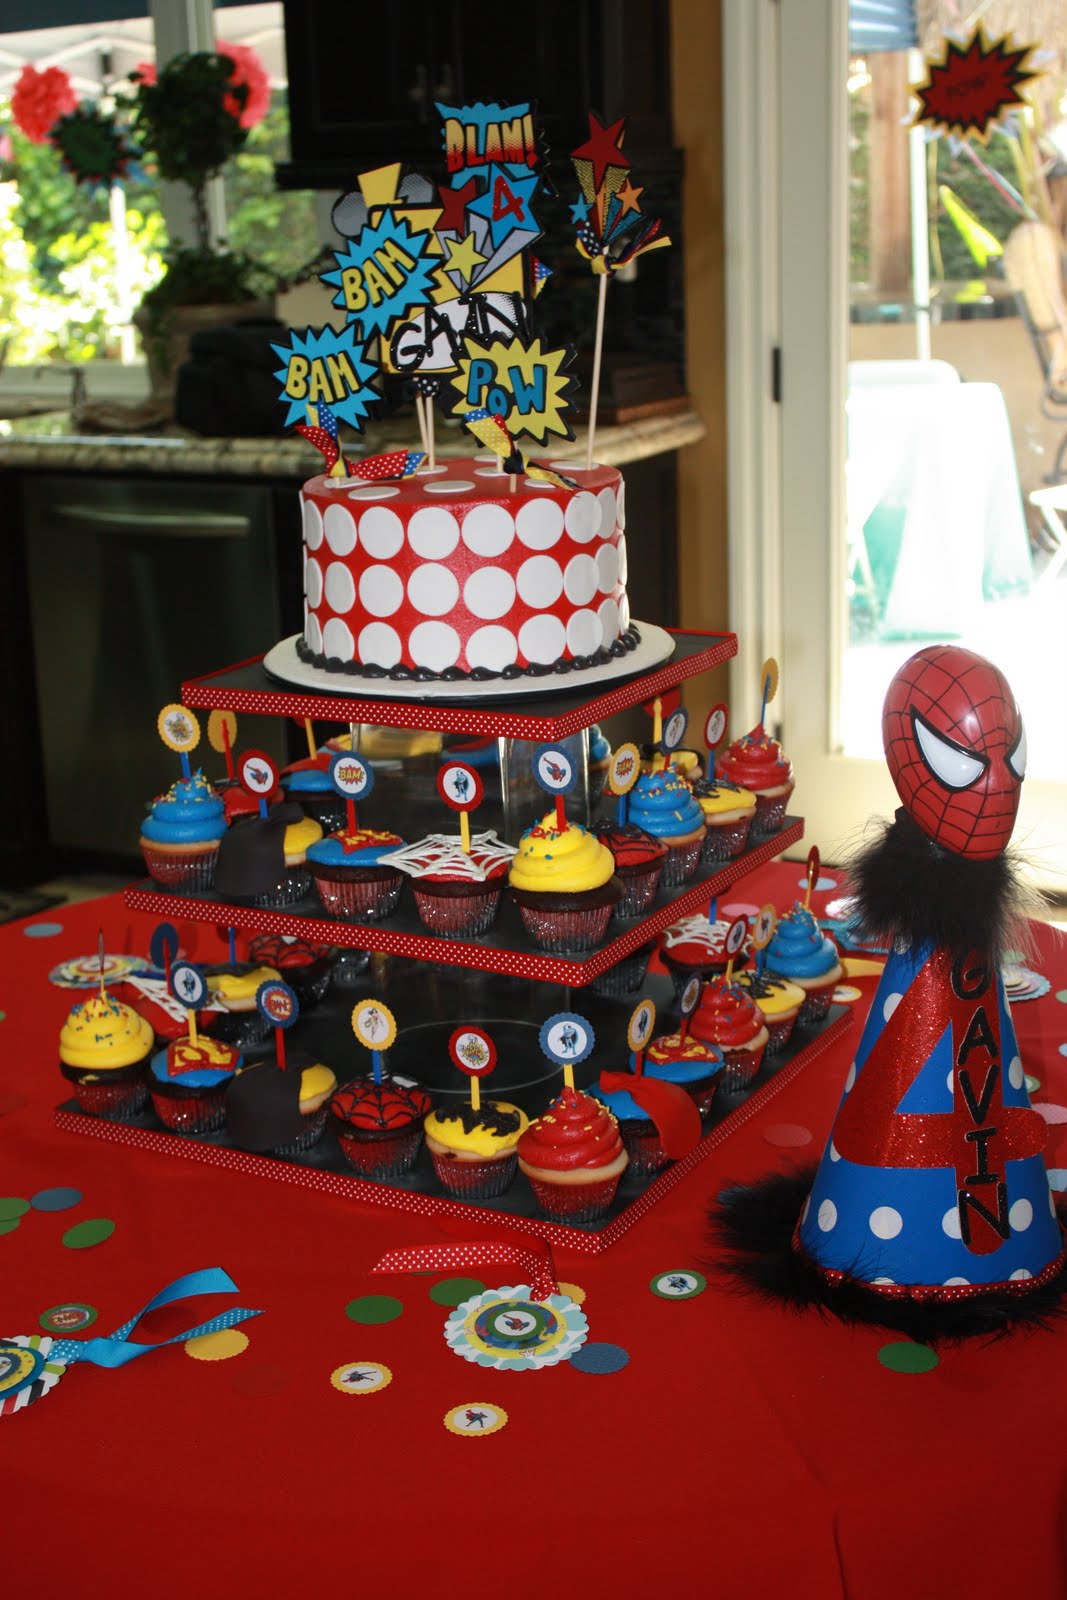 Kids birthday party theme decoration ideas interior for Decoration ideas 7th birthday party